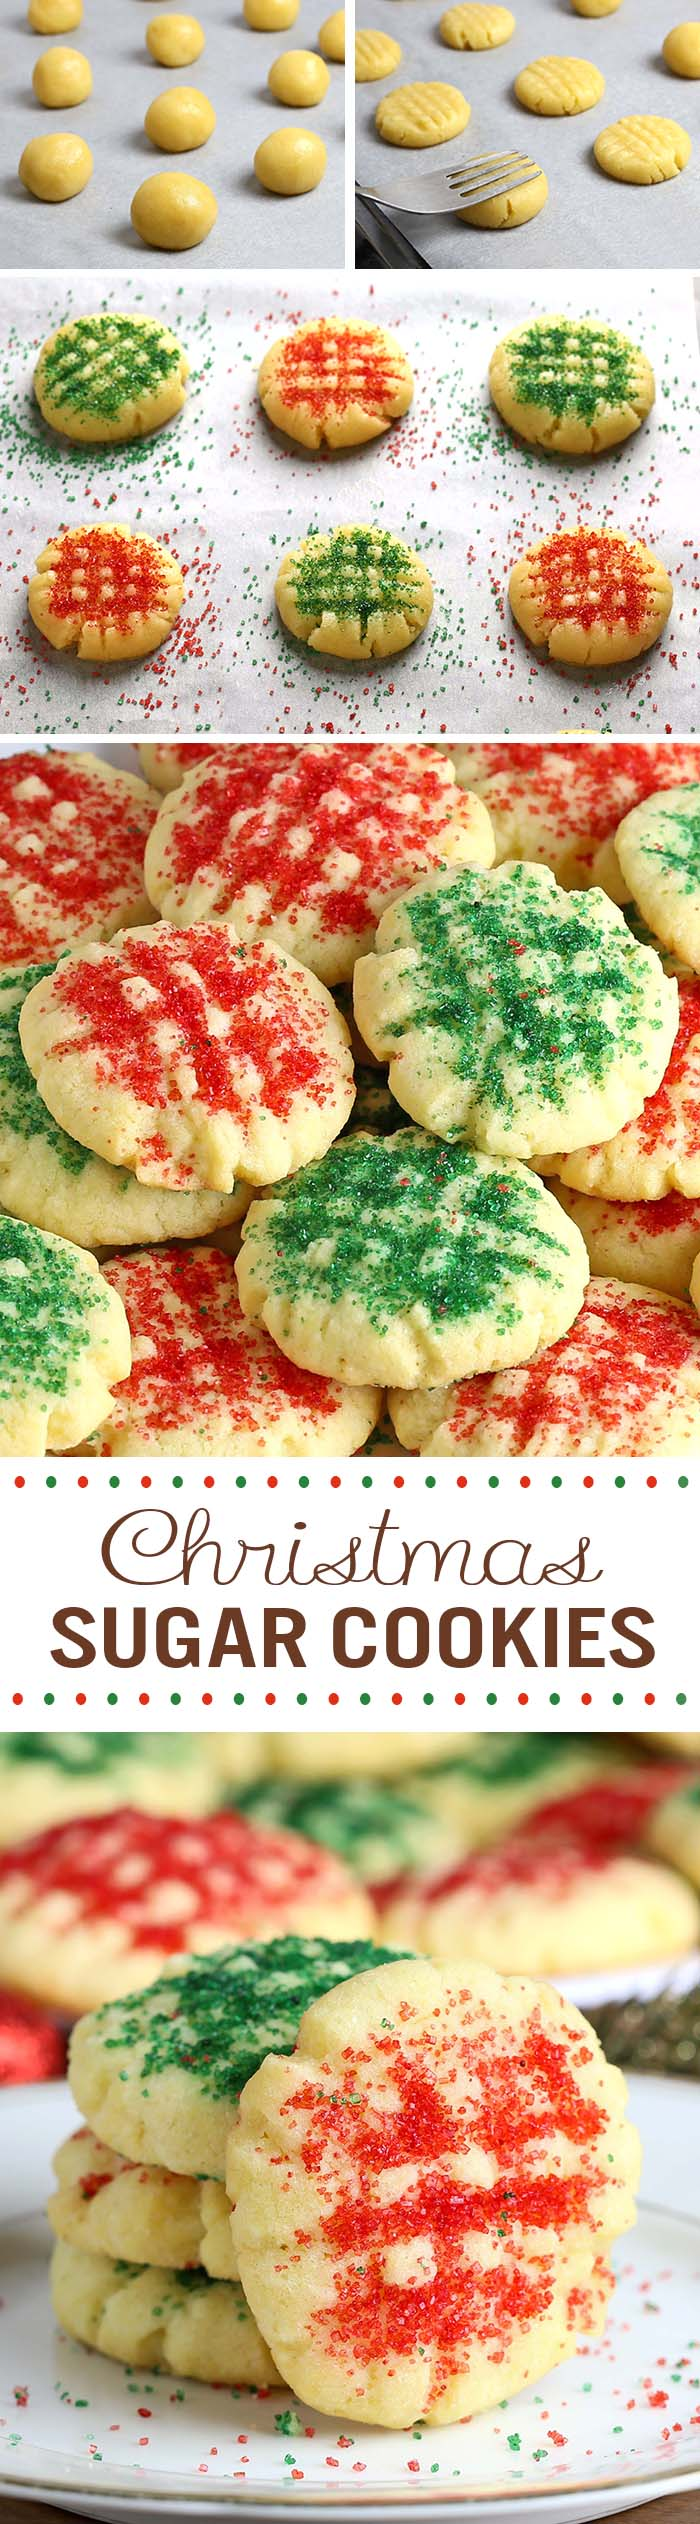 christmas-sugar-cookies-1c